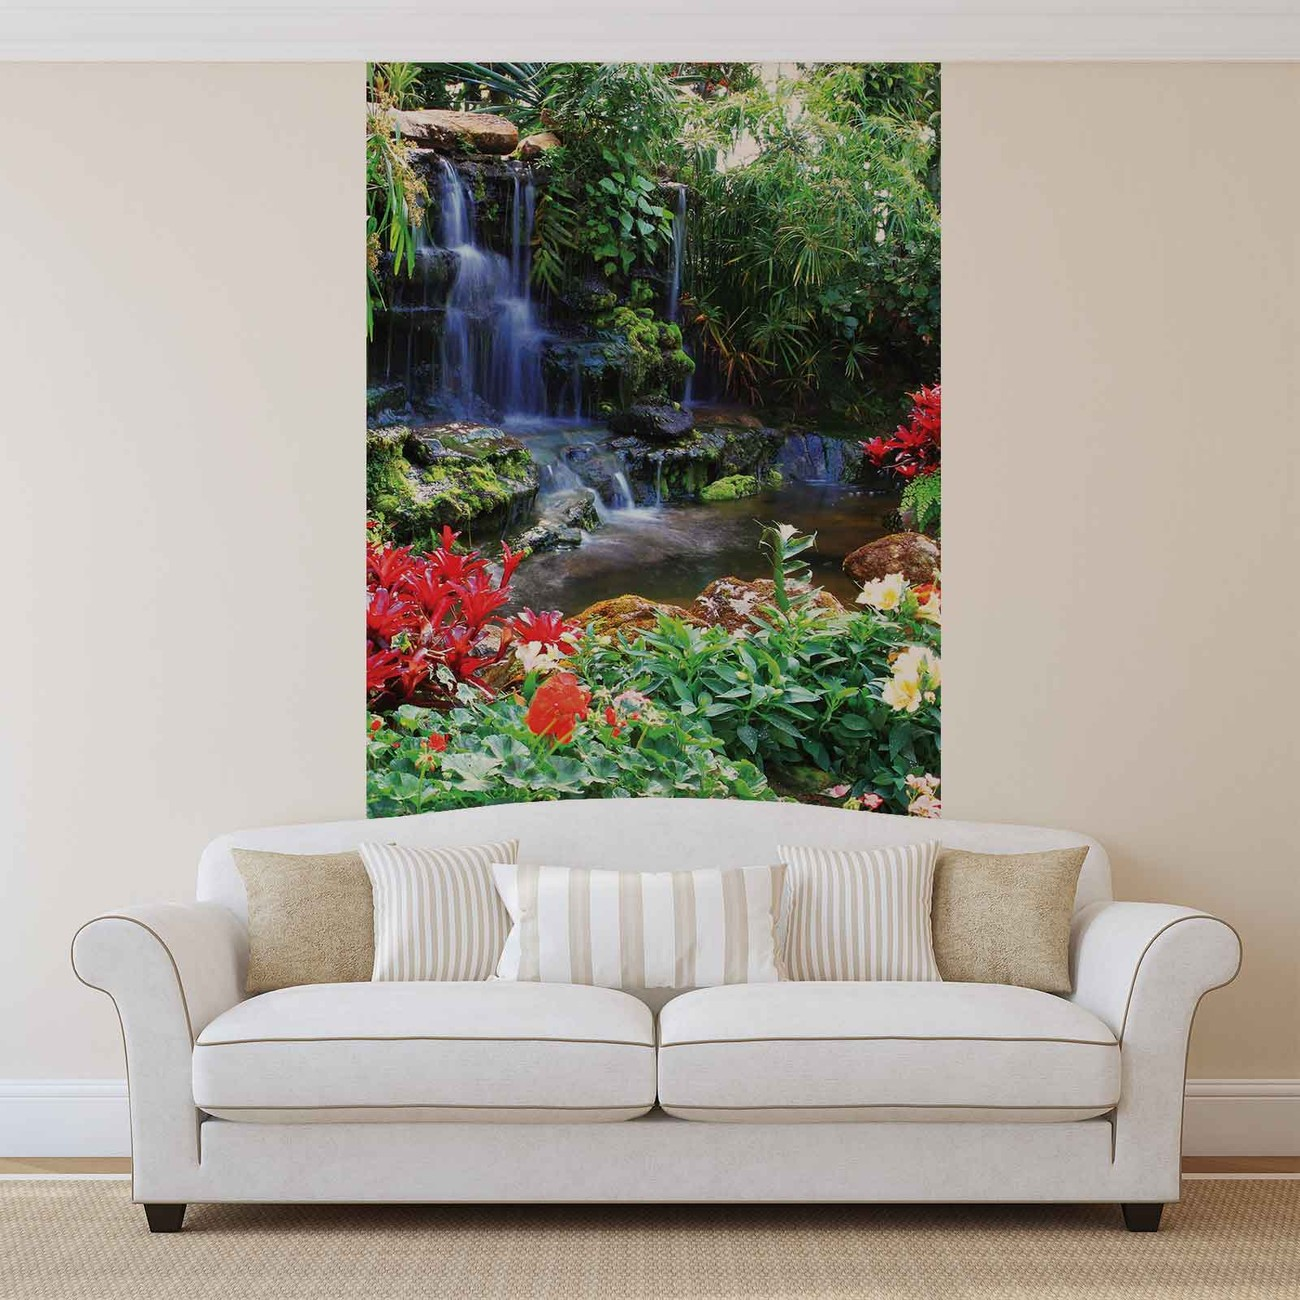 Waterfall Forest Nature Wall Mural  Buy at EuroPosters